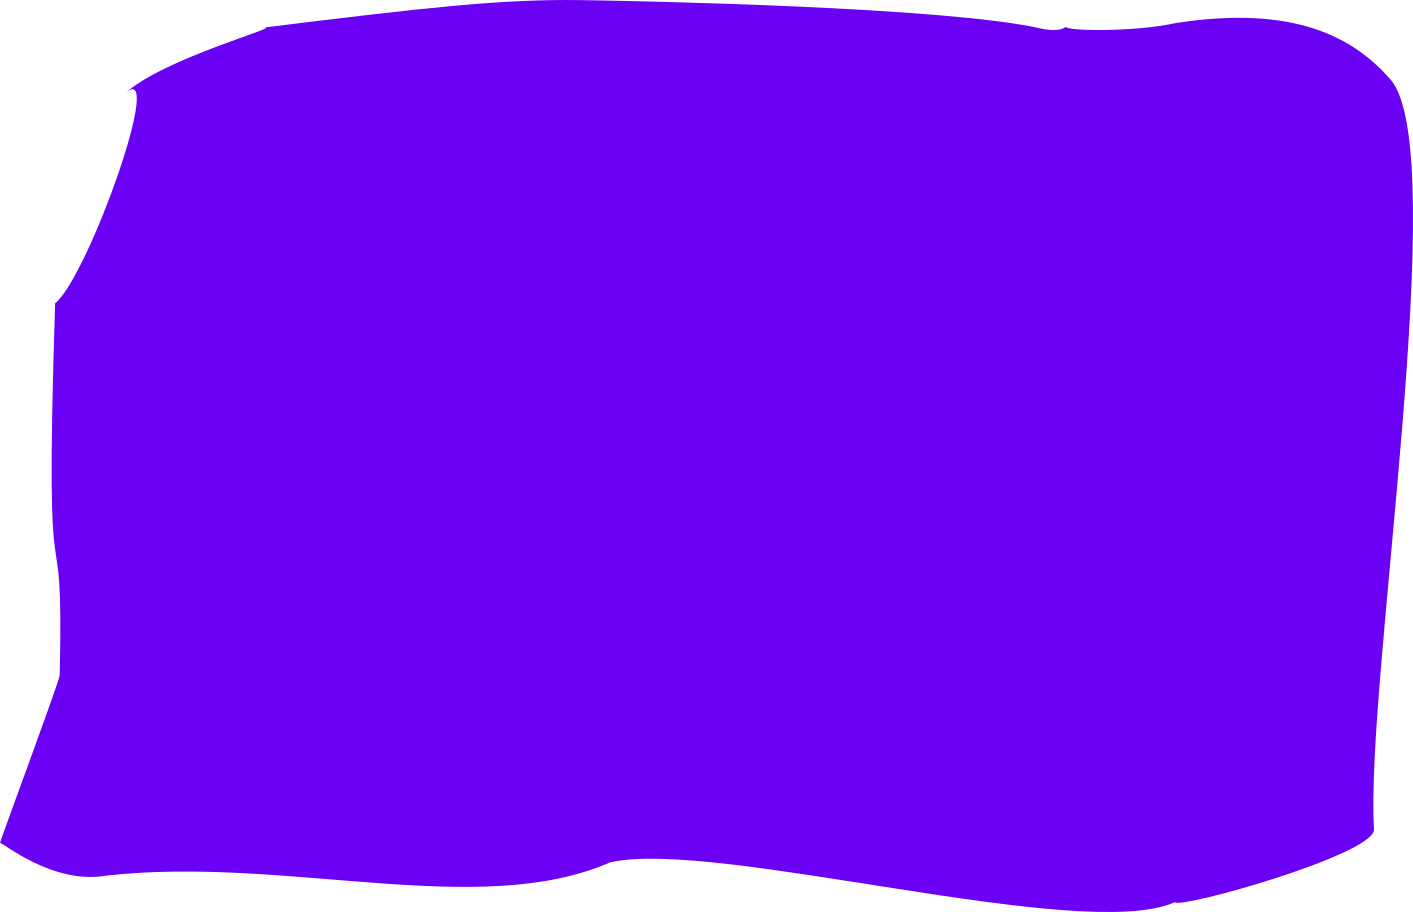 purple restangle with round corner Clipart illustration in PNG, SVG